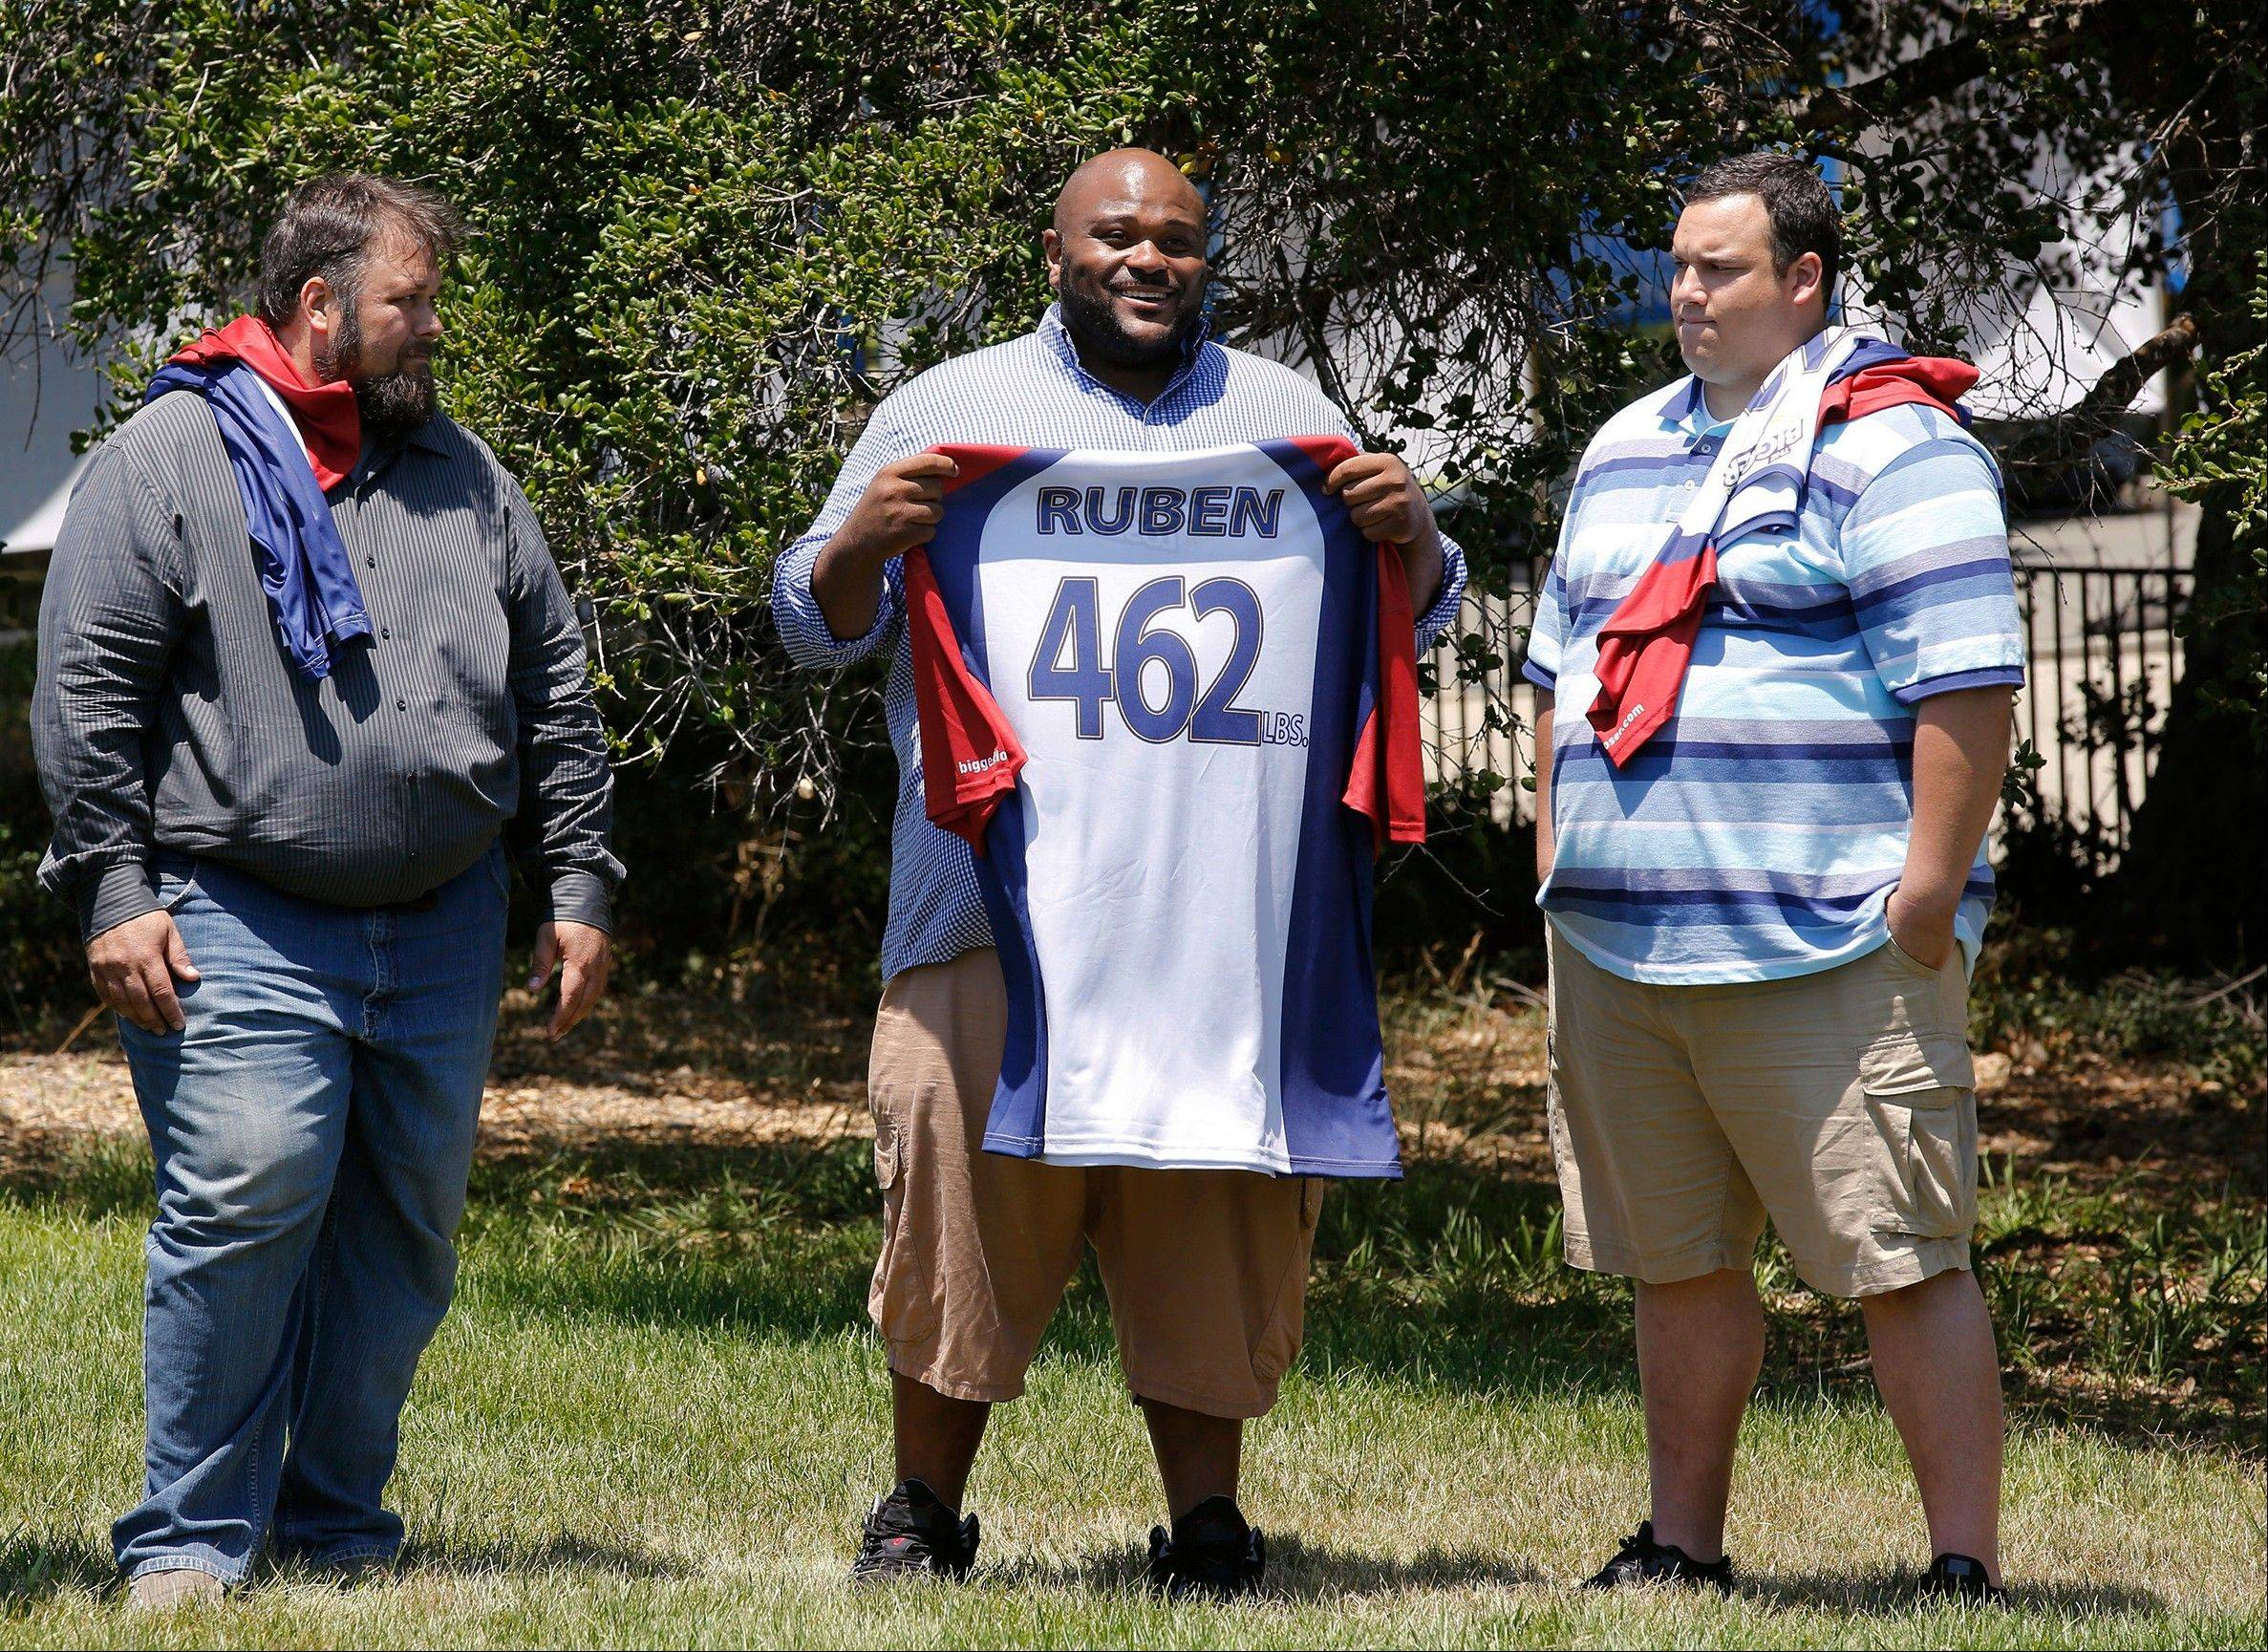 From left, David Brown, Ruben Studdard, and Hap Holmstead on �The Biggest Loser,� in Calbasas, Calif. Studdard, the season two winner of �American Idol� is the 15th season�s heaviest contestant at 462 pounds. �The Biggest Loser� returns Oct. 8 at 8 p.m. on NBC.